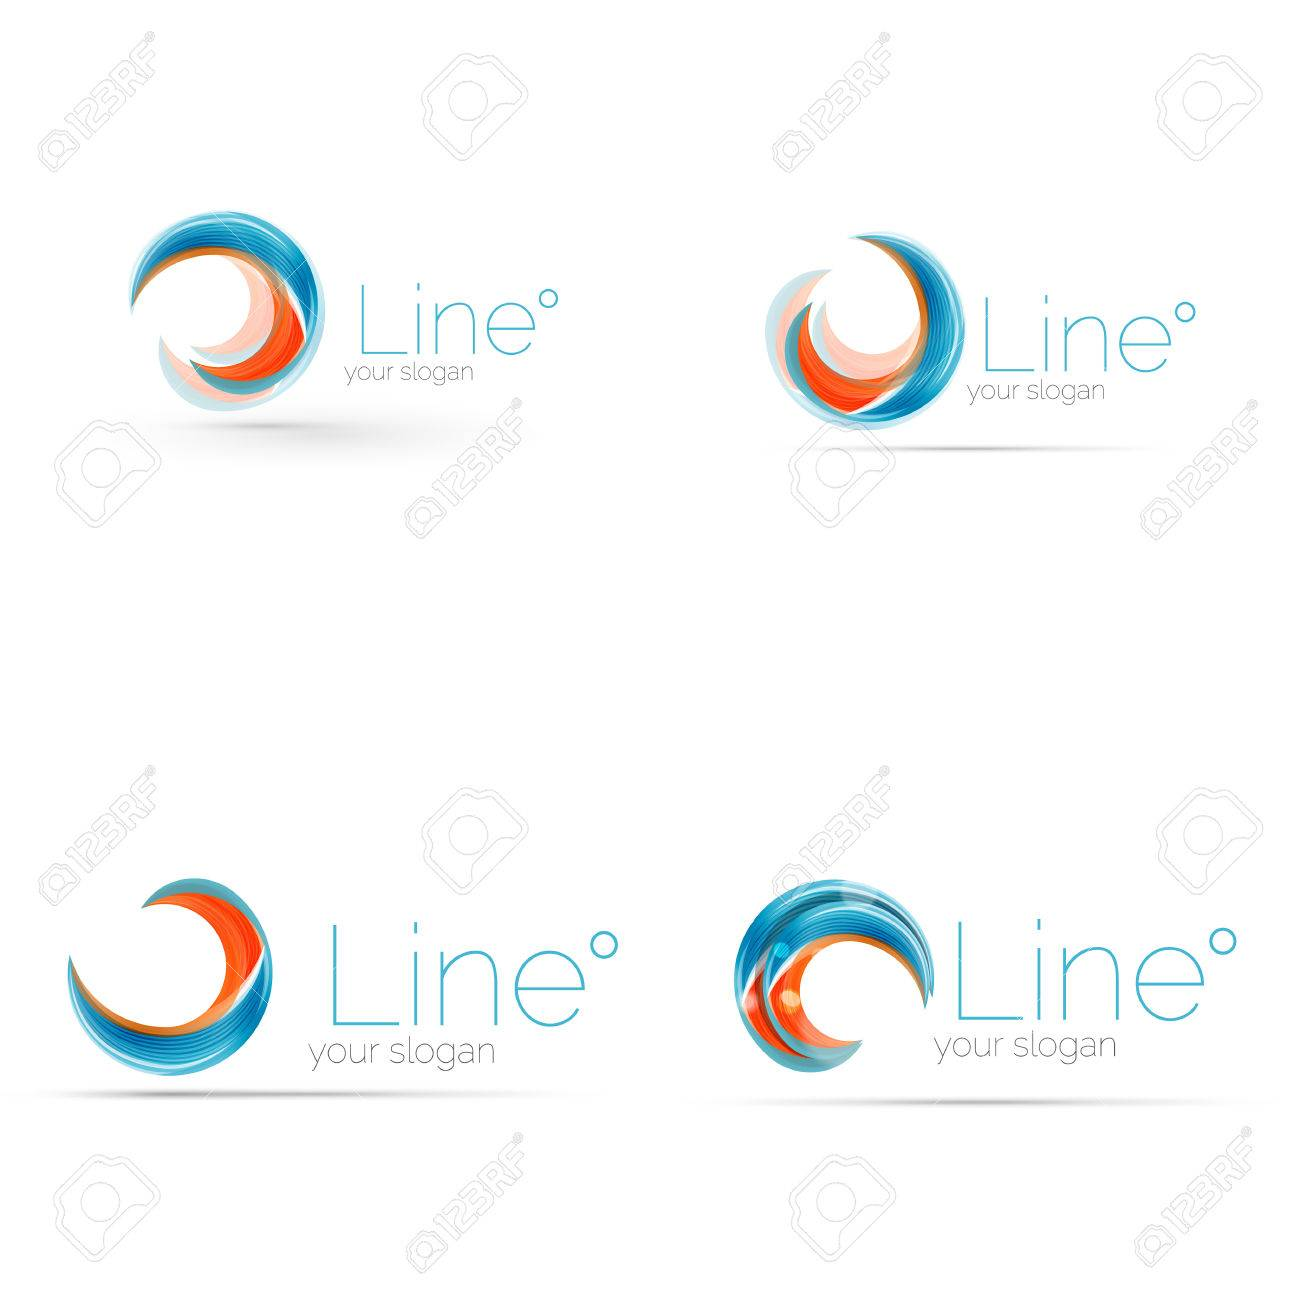 swirl blue orange company logo design universal for all ideas and concepts business creative - Company Logo Design Ideas